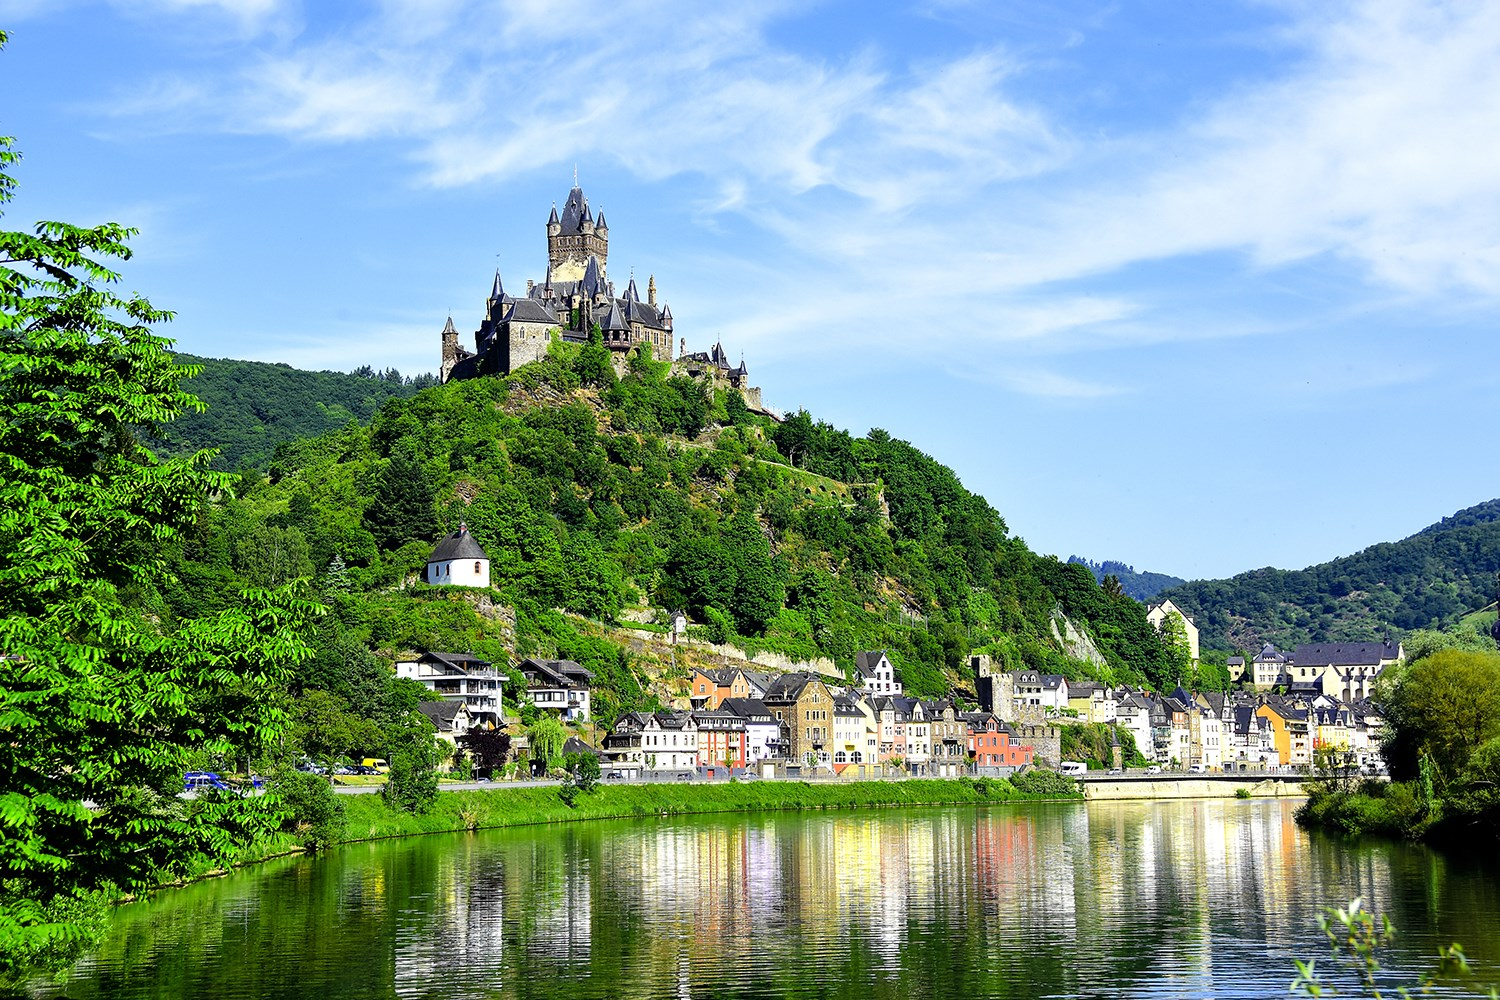 Europe S Rivers Amp Castles River Cruise 2017 Amawaterways